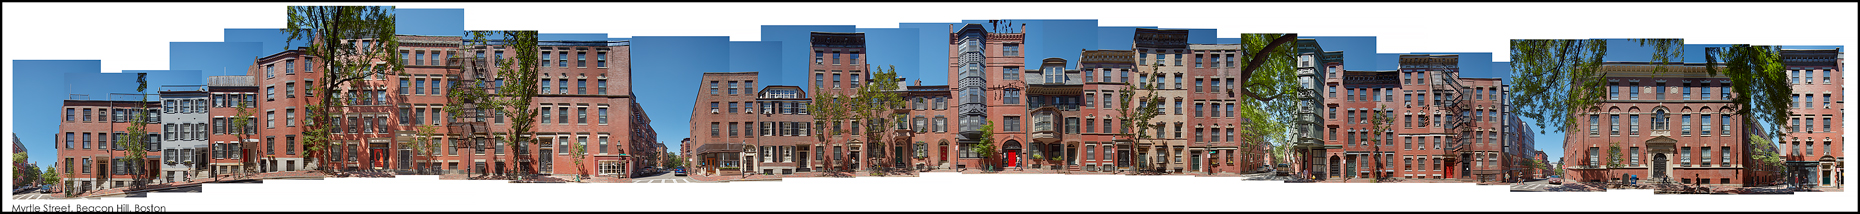 38_3217D_Myrtle-Street_Beacon-Hill